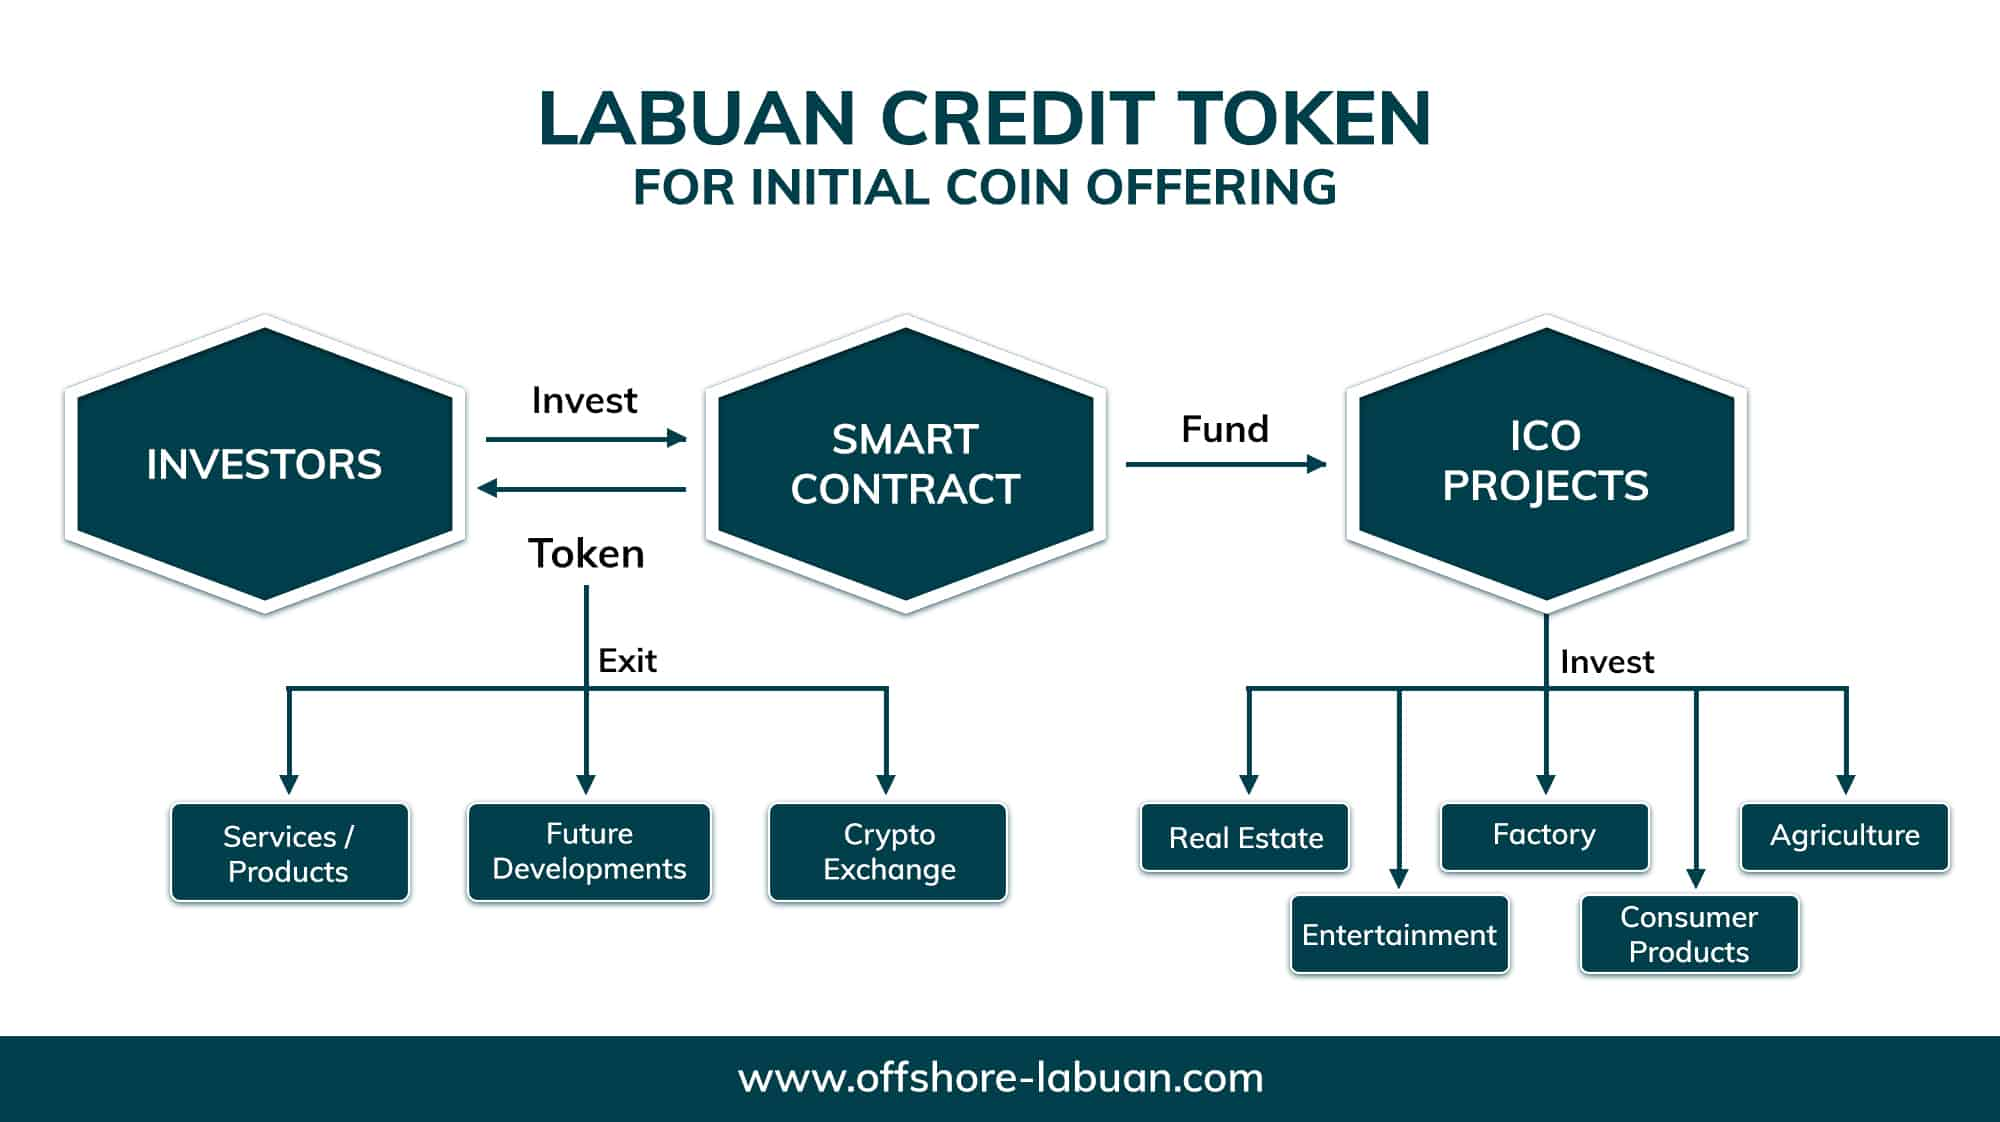 Get a Labuan Credit Token License for Initial Coin Offering | QX Trust | Offshore Labuan Consultants